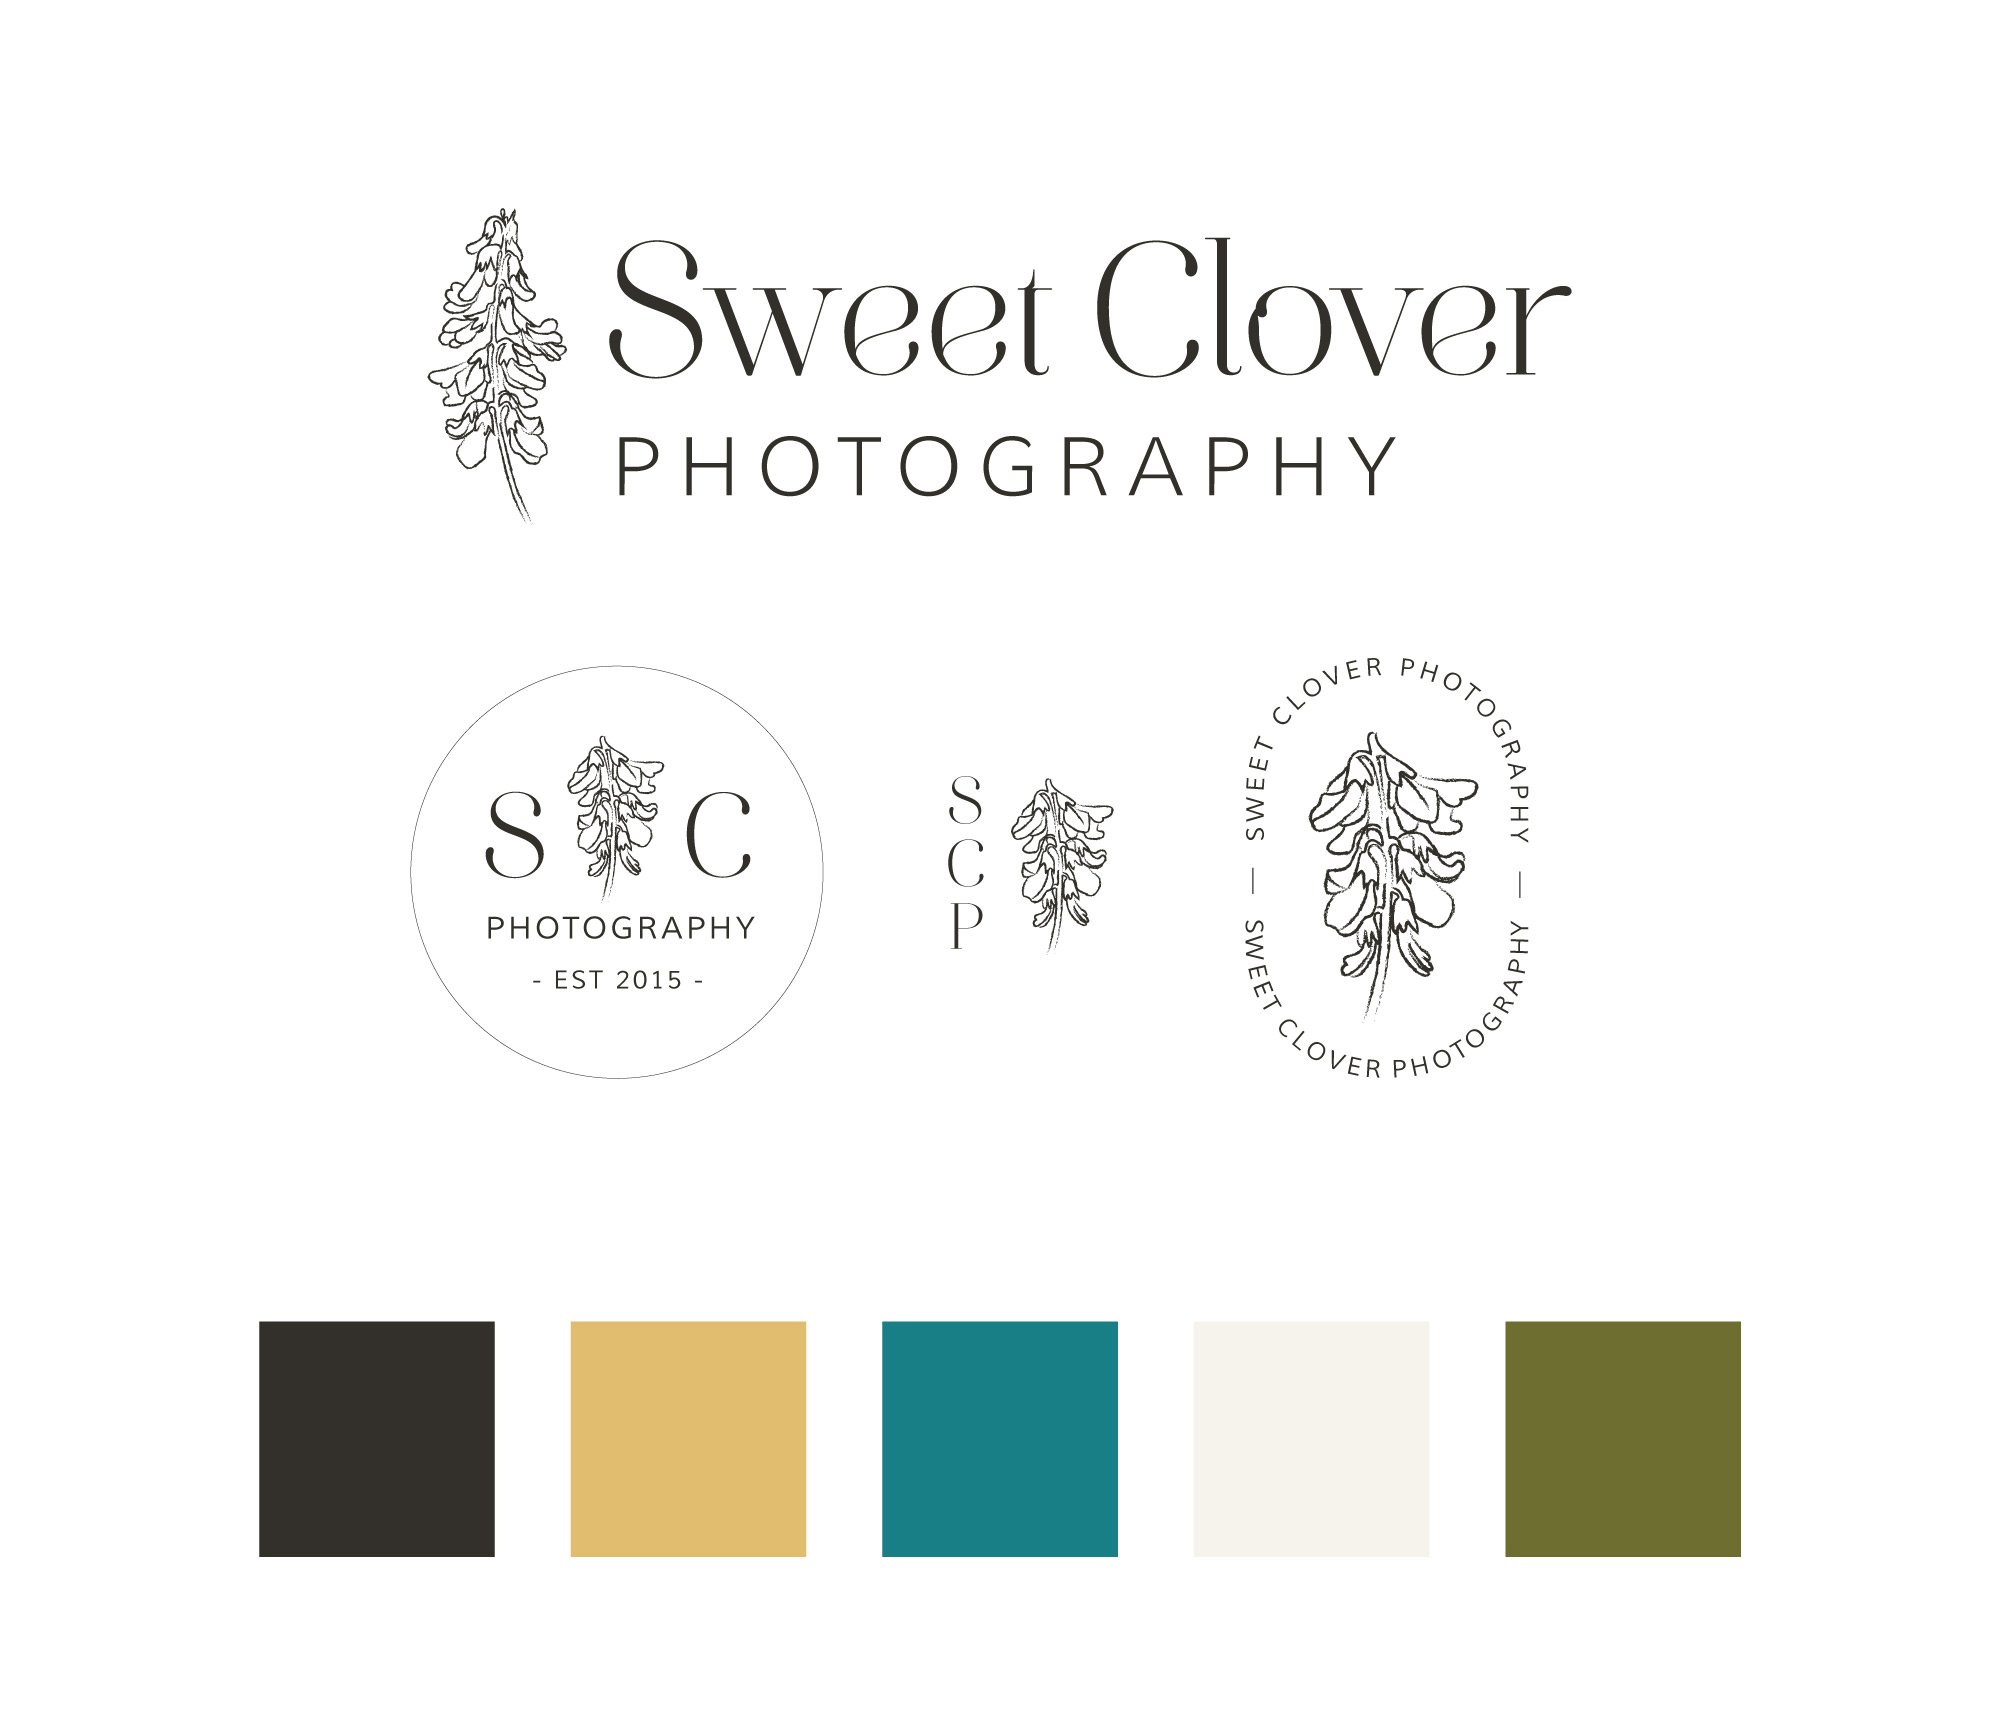 photographer logo design, brand design for photographers